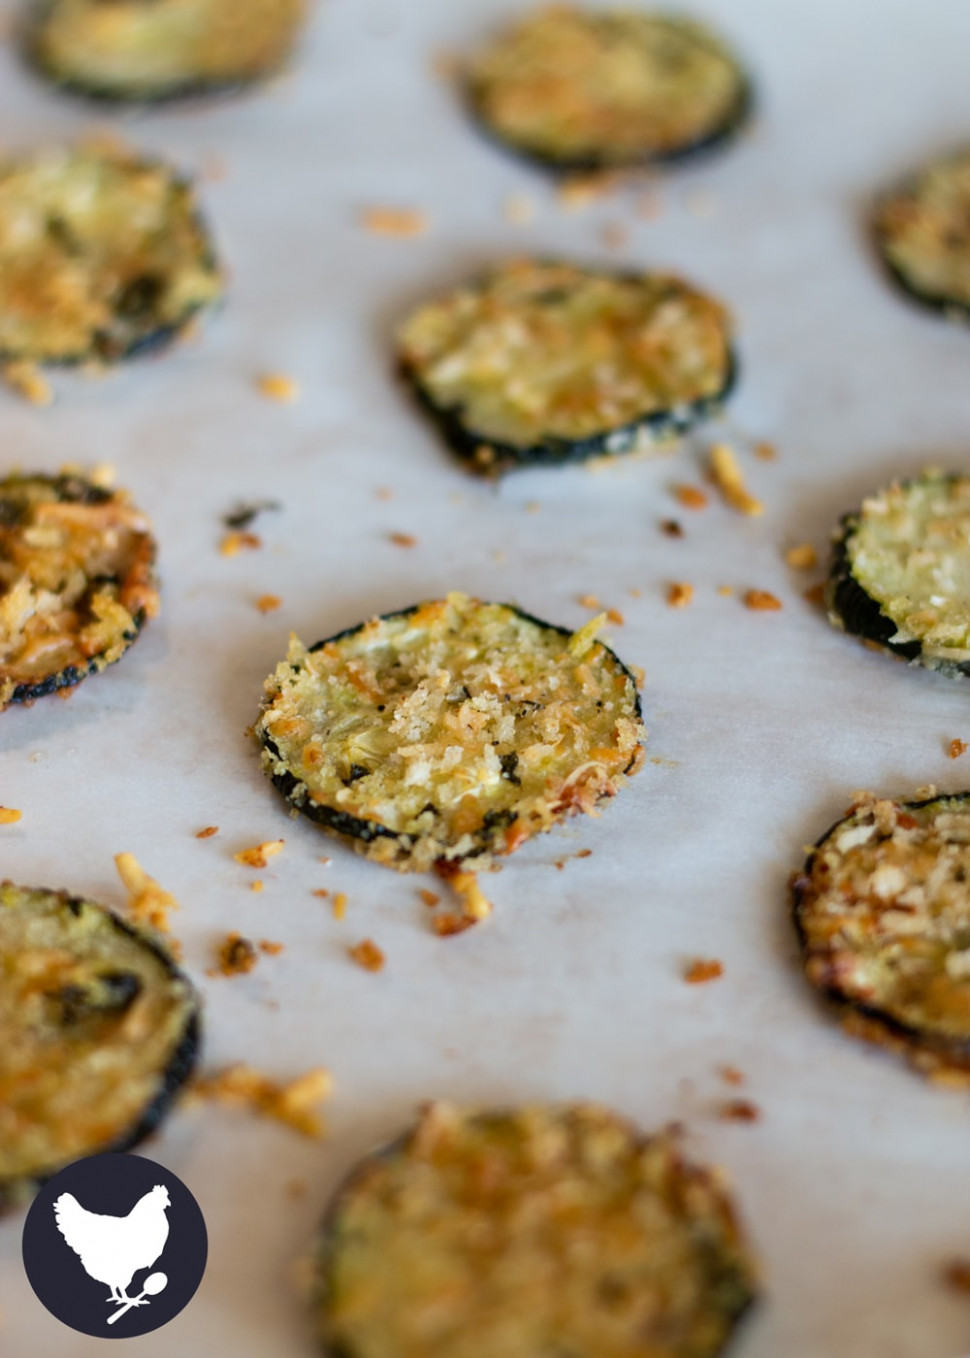 Baked Zucchini Chips | Cosmopolitan Cornbread - Baked Zucchini Recipes Healthy